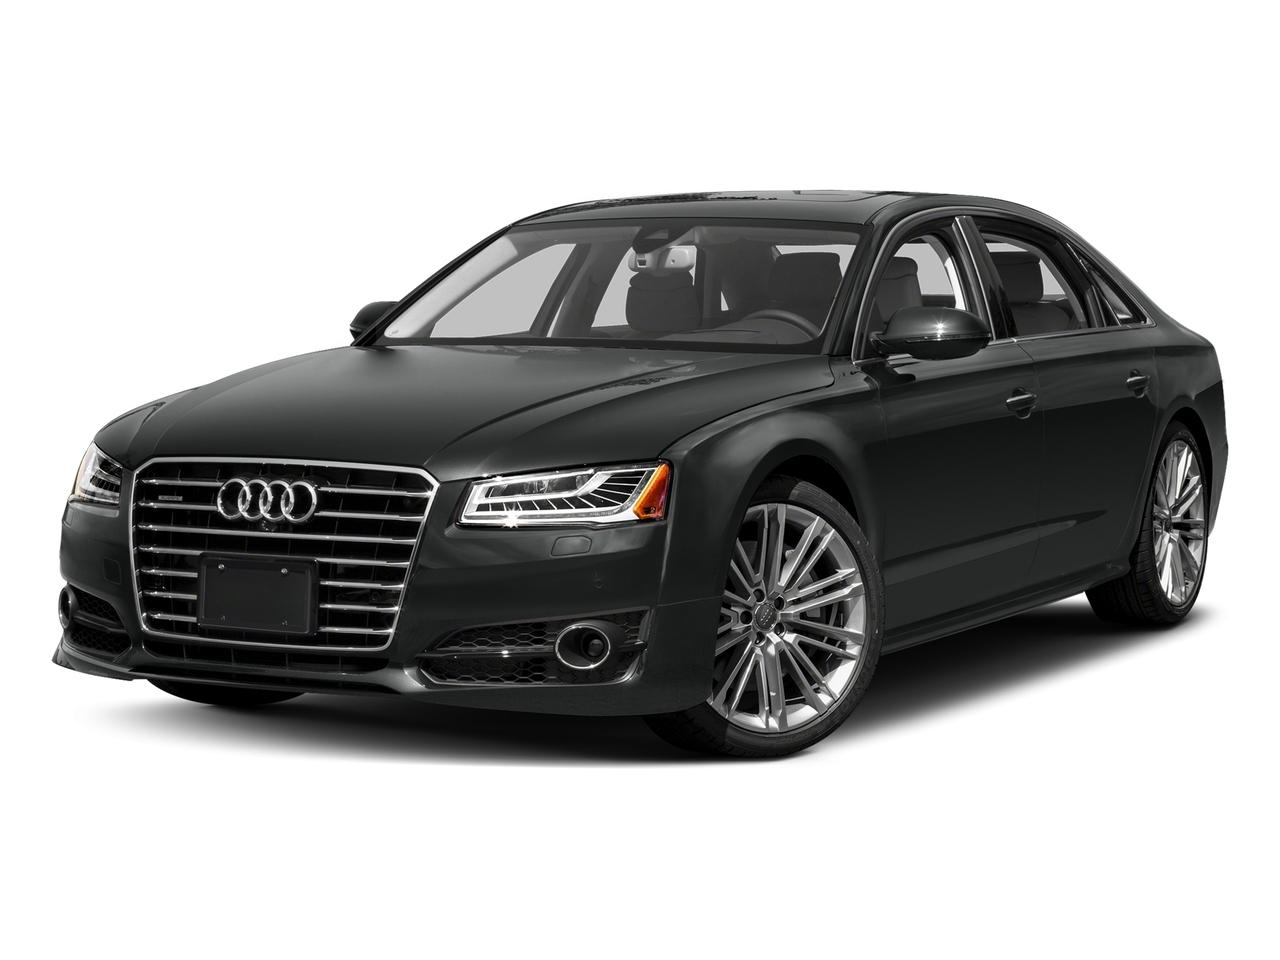 2016 Audi A8 L Vehicle Photo in Glenwood Springs, CO 81601